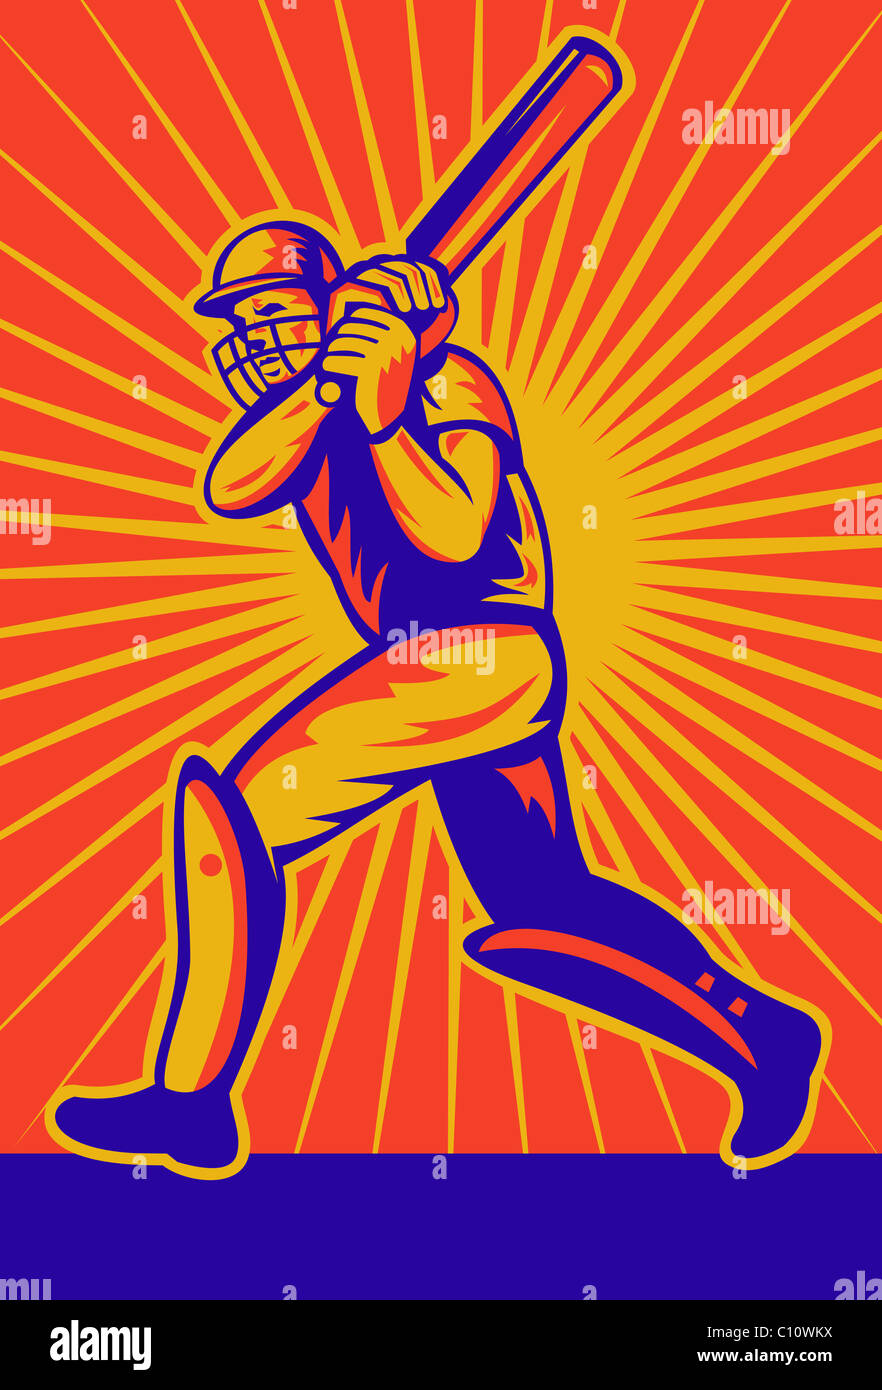 illustration of a cricket batsman batting front view with sunburst in background done in retro style - Stock Image